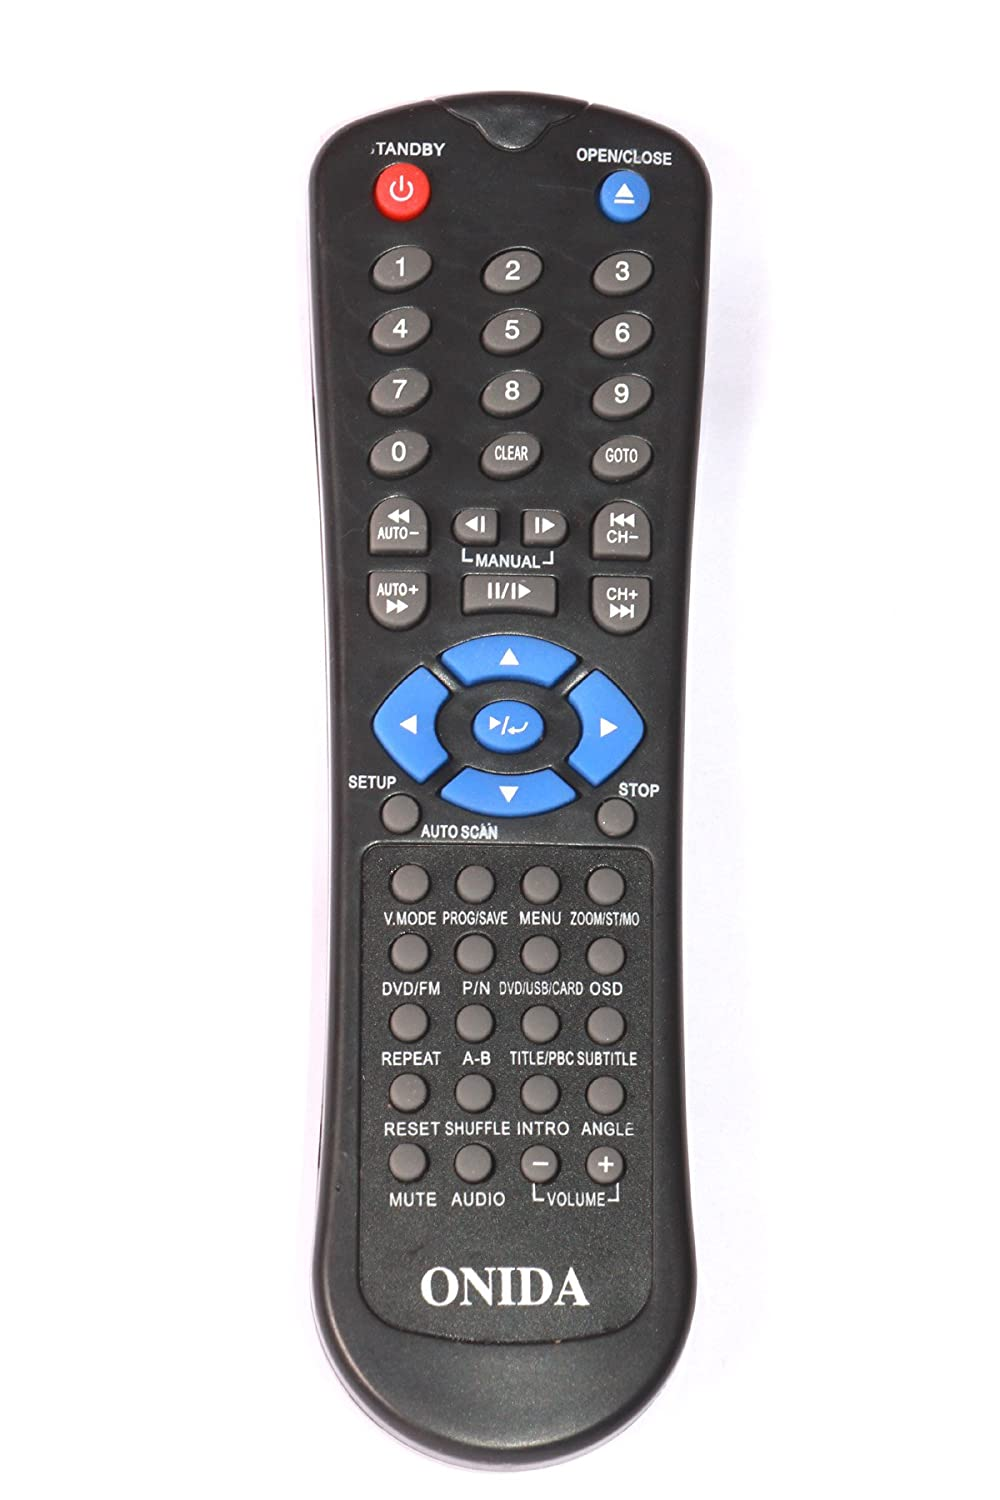 Buy Onida Dvd Player Universal Remote Control Online At Low Prices In India Amazon In